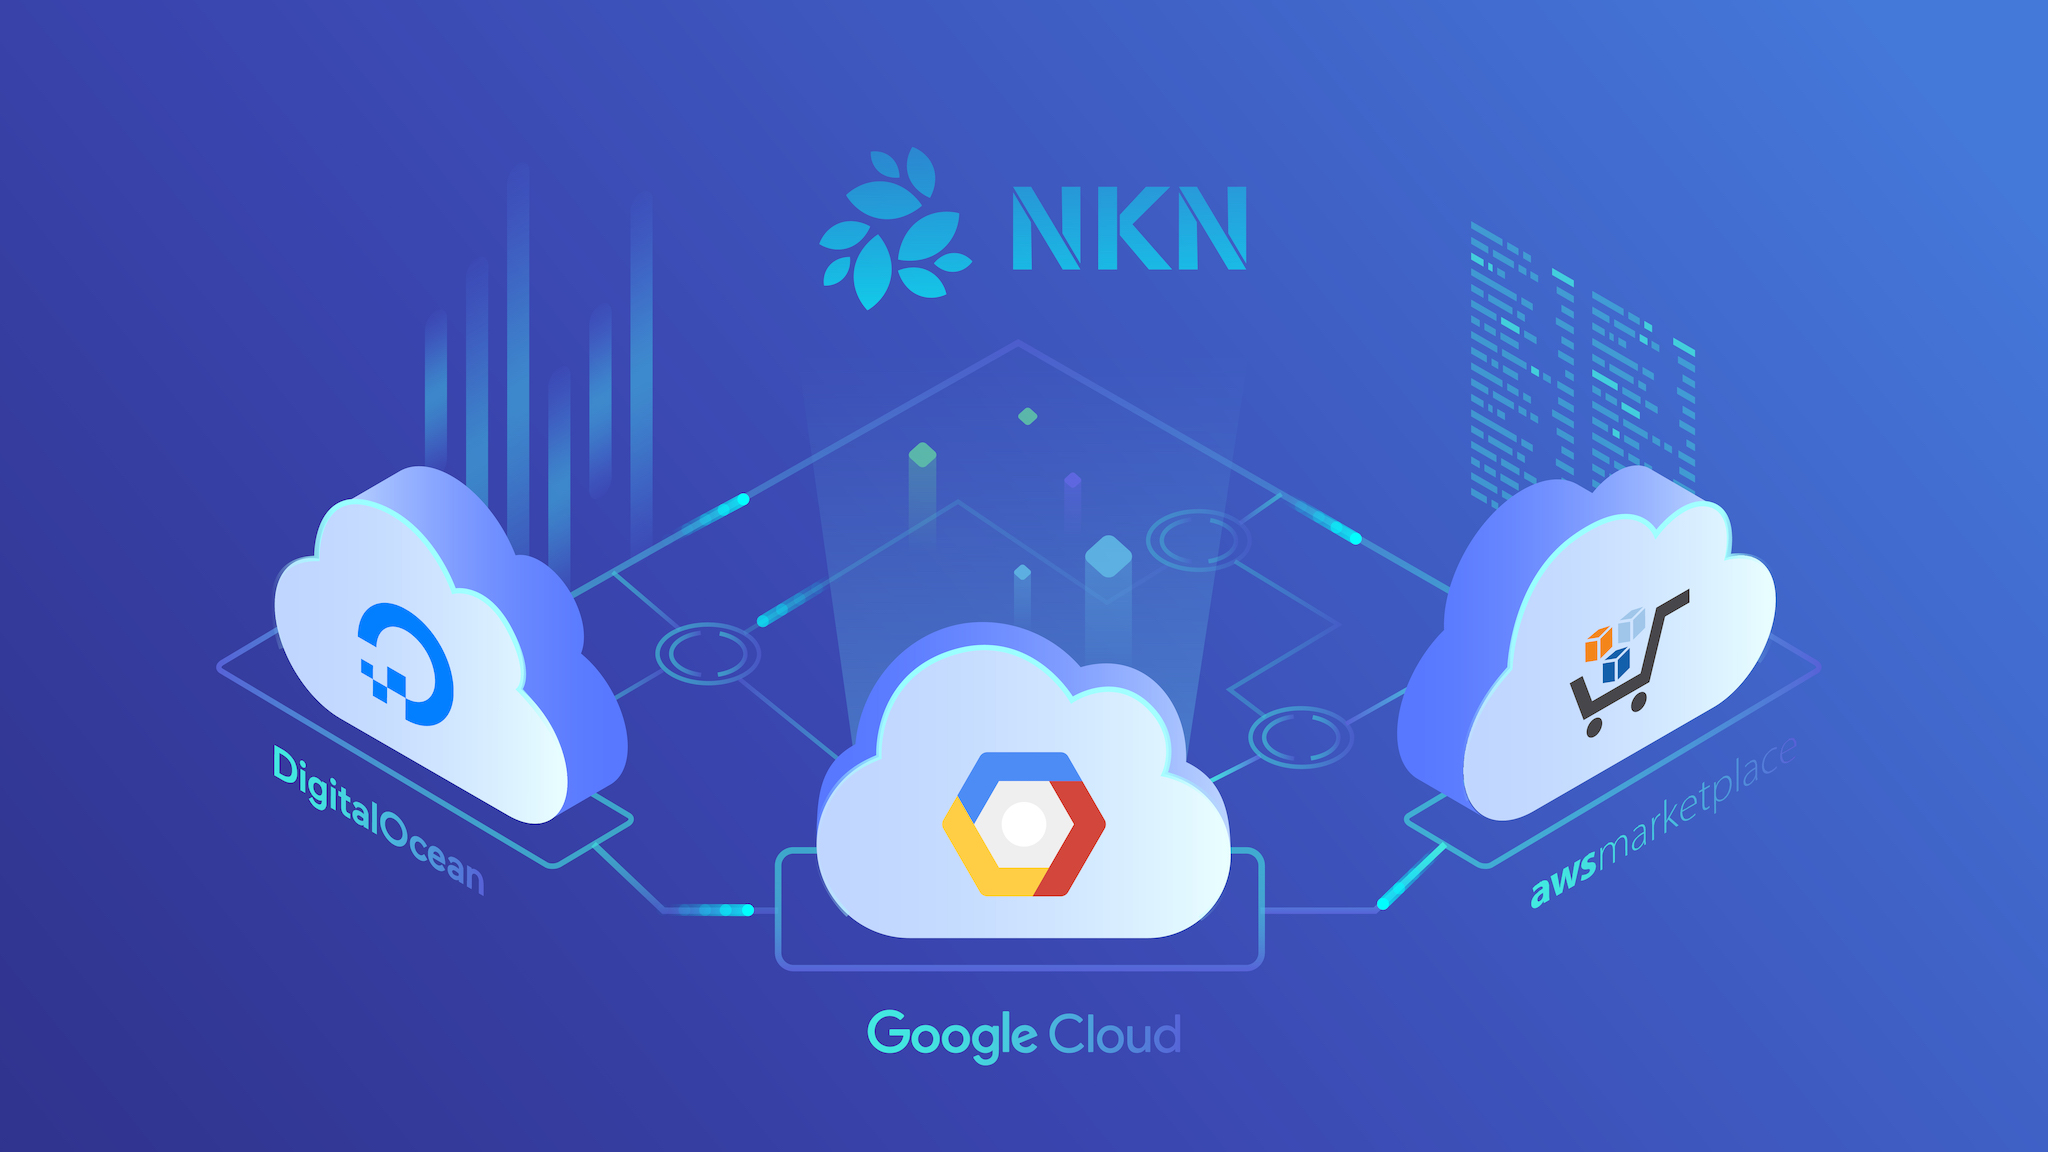 NKN-3-clouds%20small